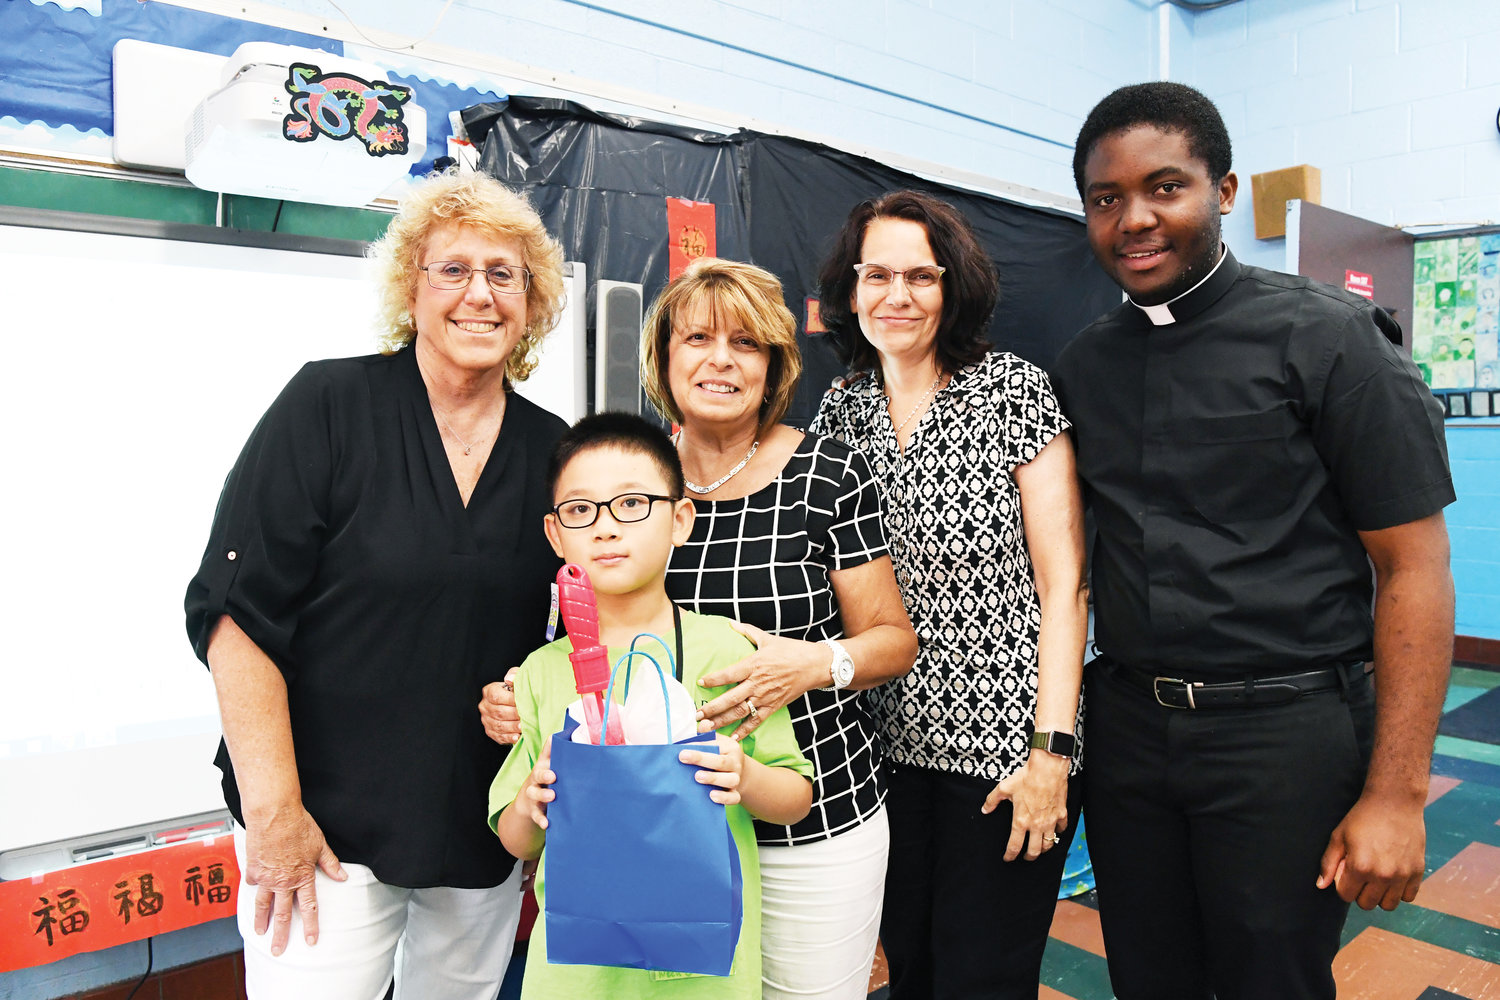 Sam Lin Gaoxi, 8, pictured with camp director Mary Lee, principal Theresa Signorile, assistant principal Denise Olsen and Collins Ashu, a seminarian at St. Joseph's Seminary, Dunwoodie.